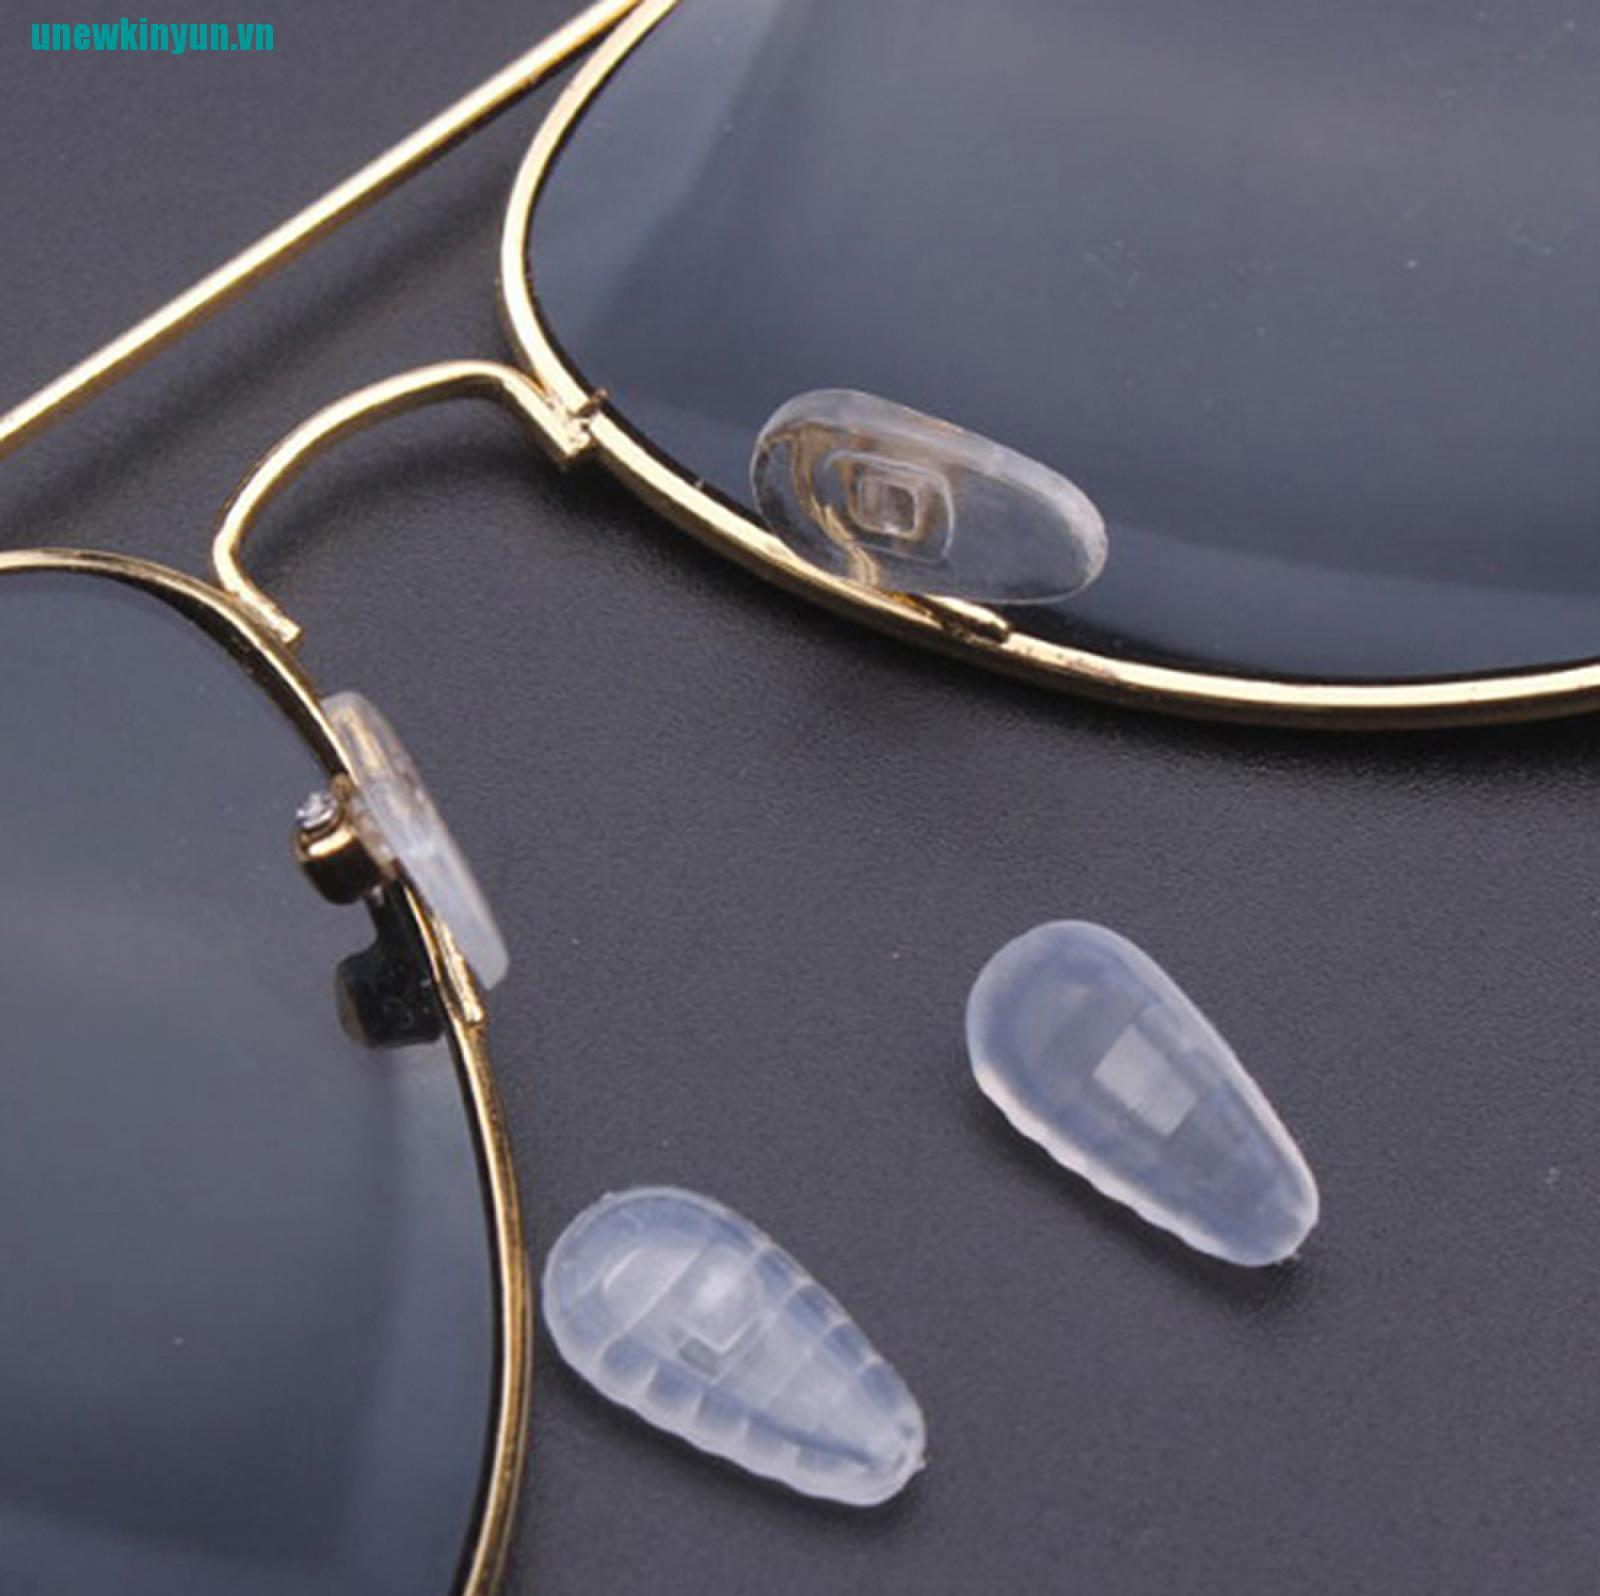 yun♪10*Silicone Air Chamber Nose Pads For Glasses Eyeglasses Sunglasses Screw Push